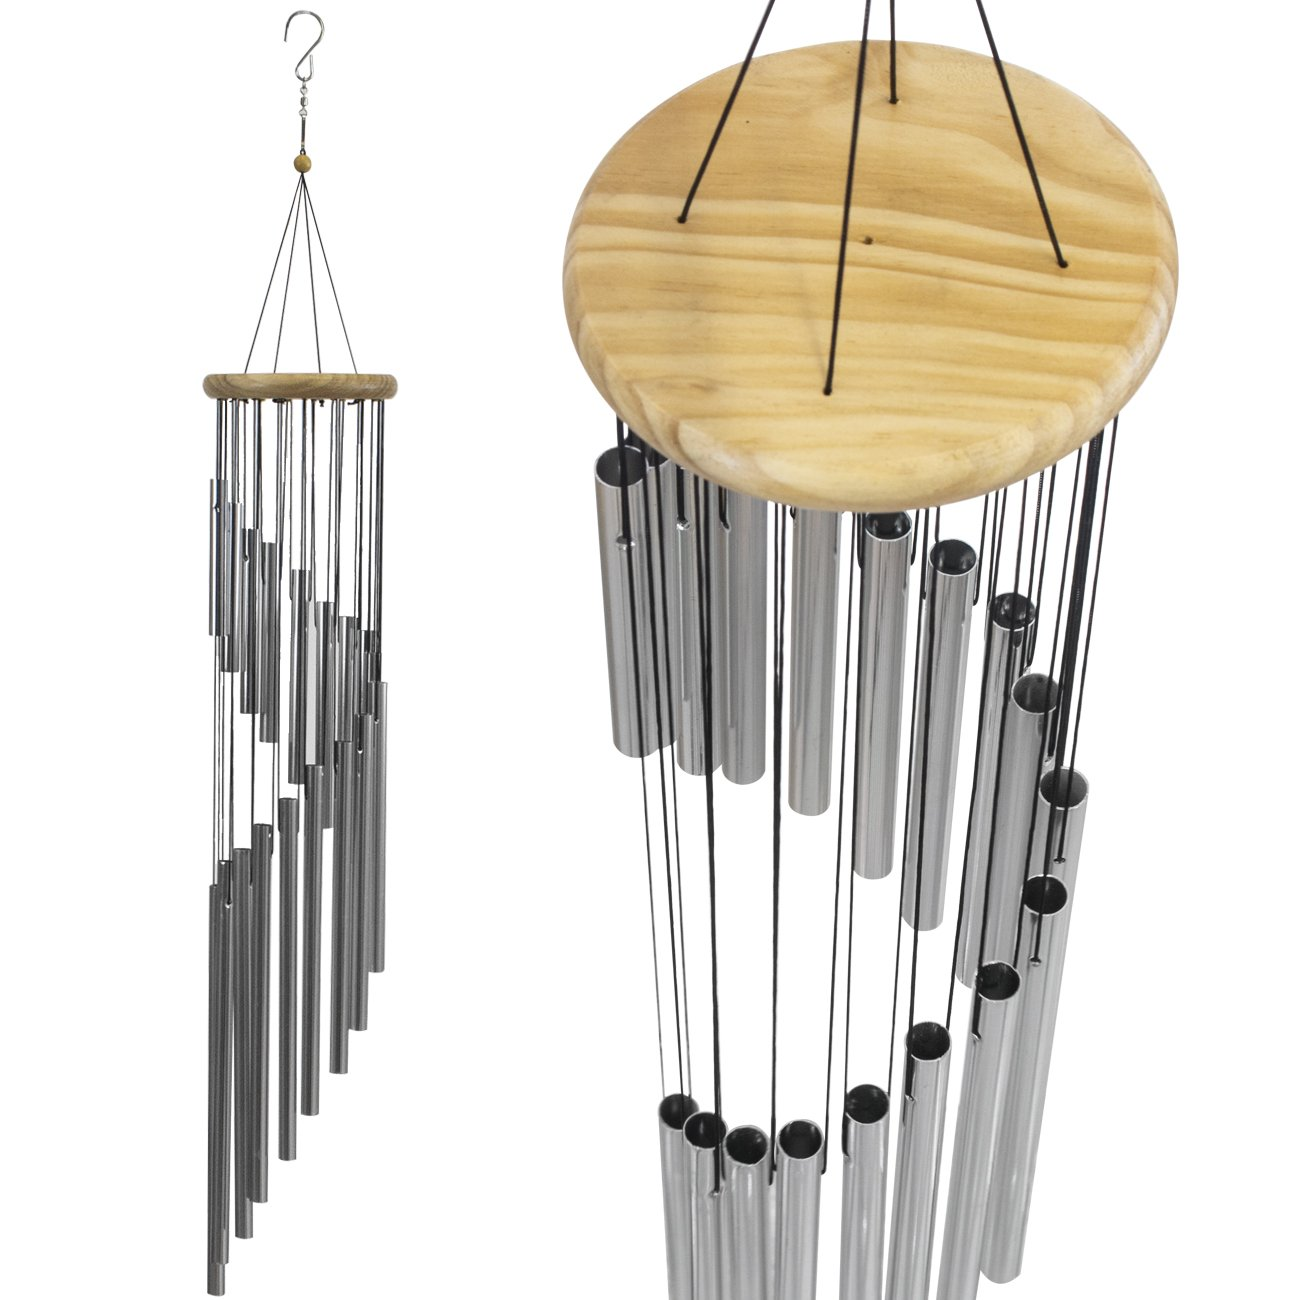 Sorbus Wind Chime – Tubular Decorative Outdoor Garden Accent with Soothing Musical Bell Sounds – Great for Front Door, Home, Deck, Patio, or Garden, Metal (Wind Chime - Silver)